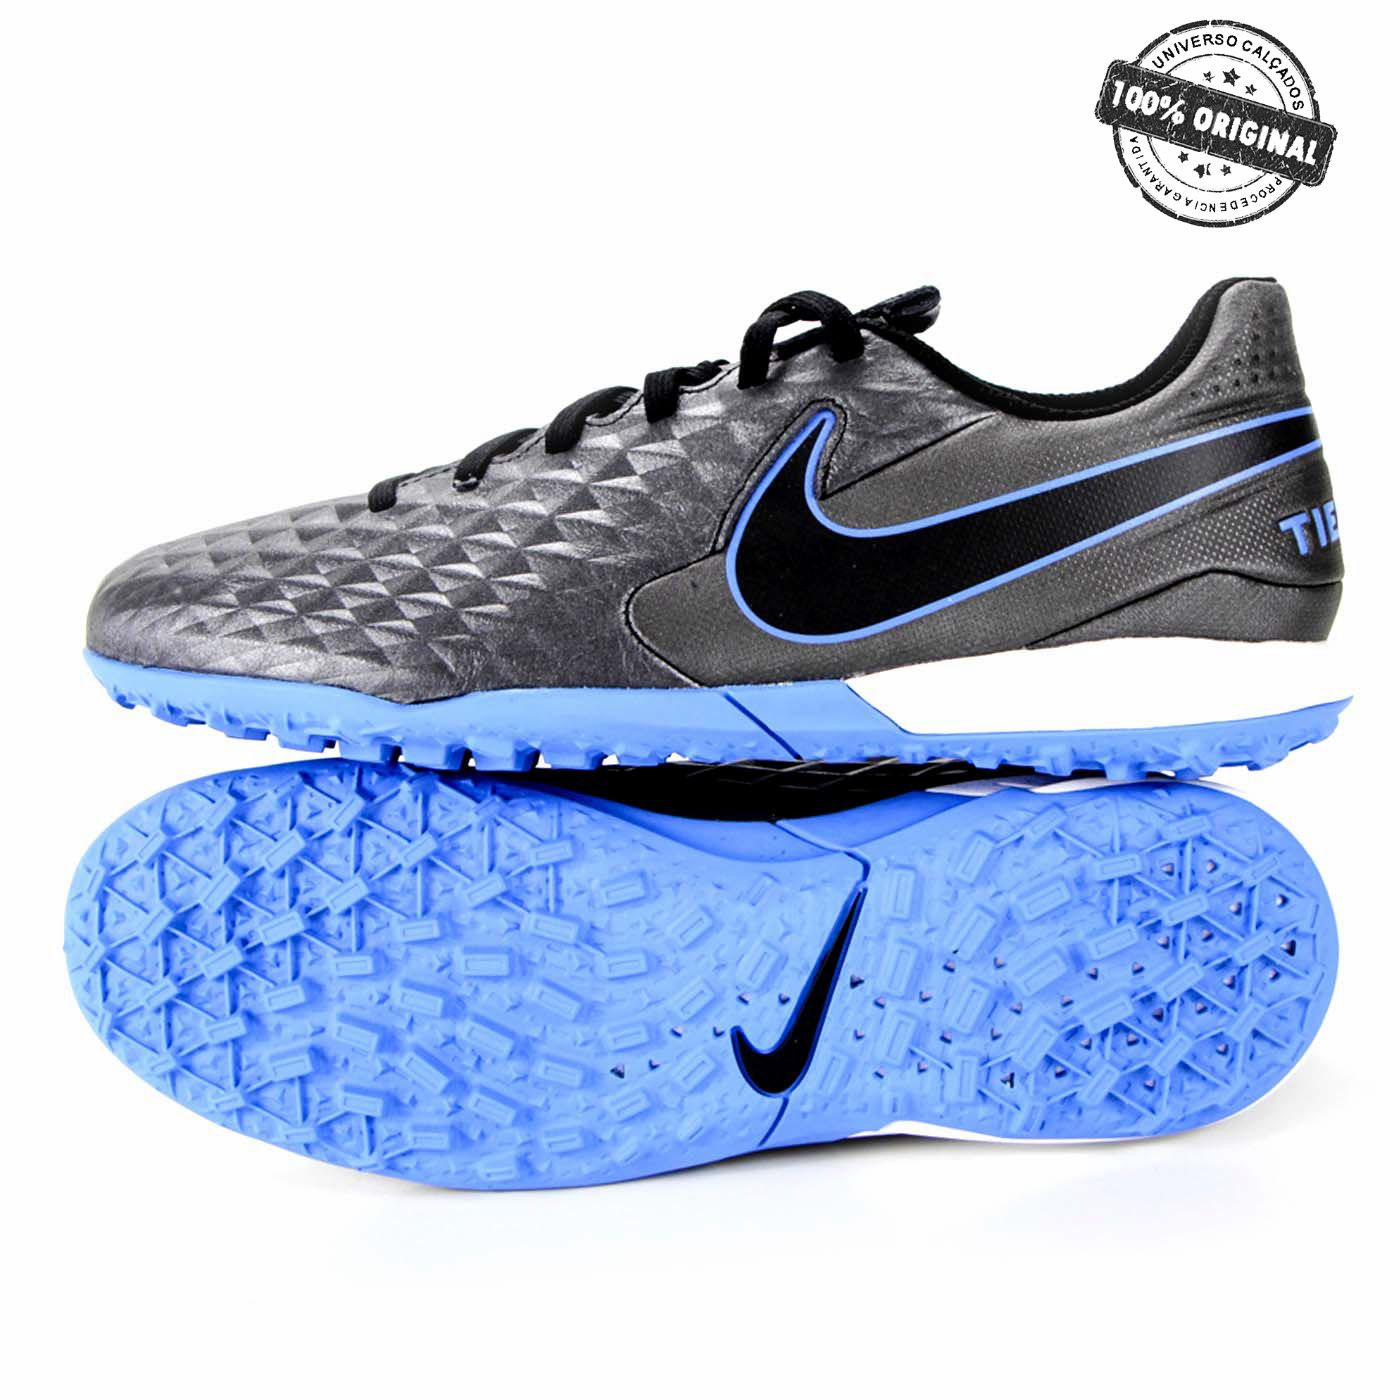 CHUTEIRA NIKE SOCIETY LEGEND 8 ACADEMY TF - AT6100